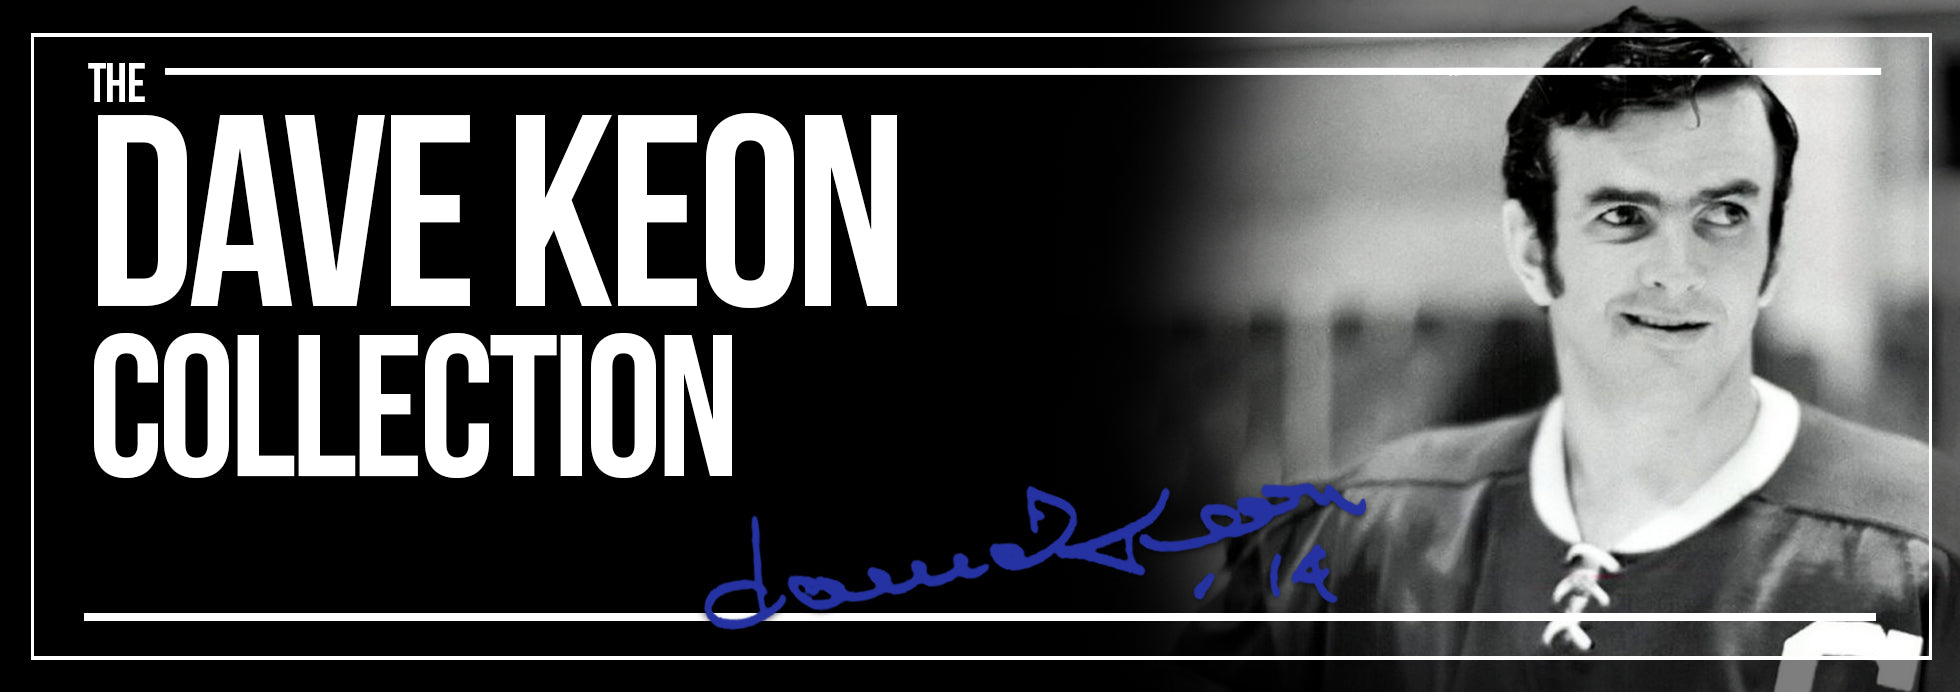 Dave Keon Collection Banner